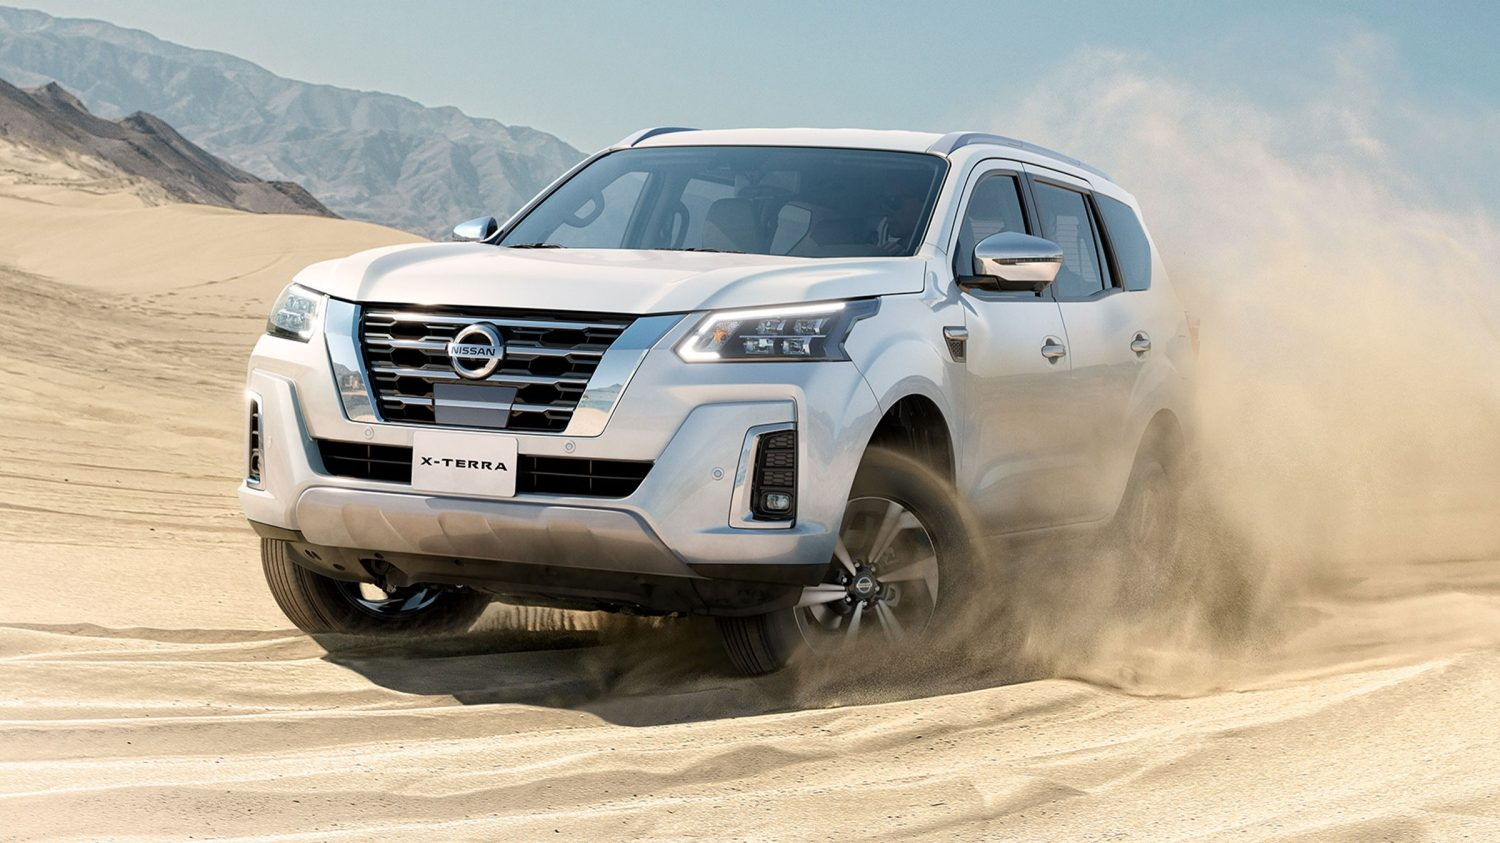 2021 Nissan X-Terra performance driving in desert